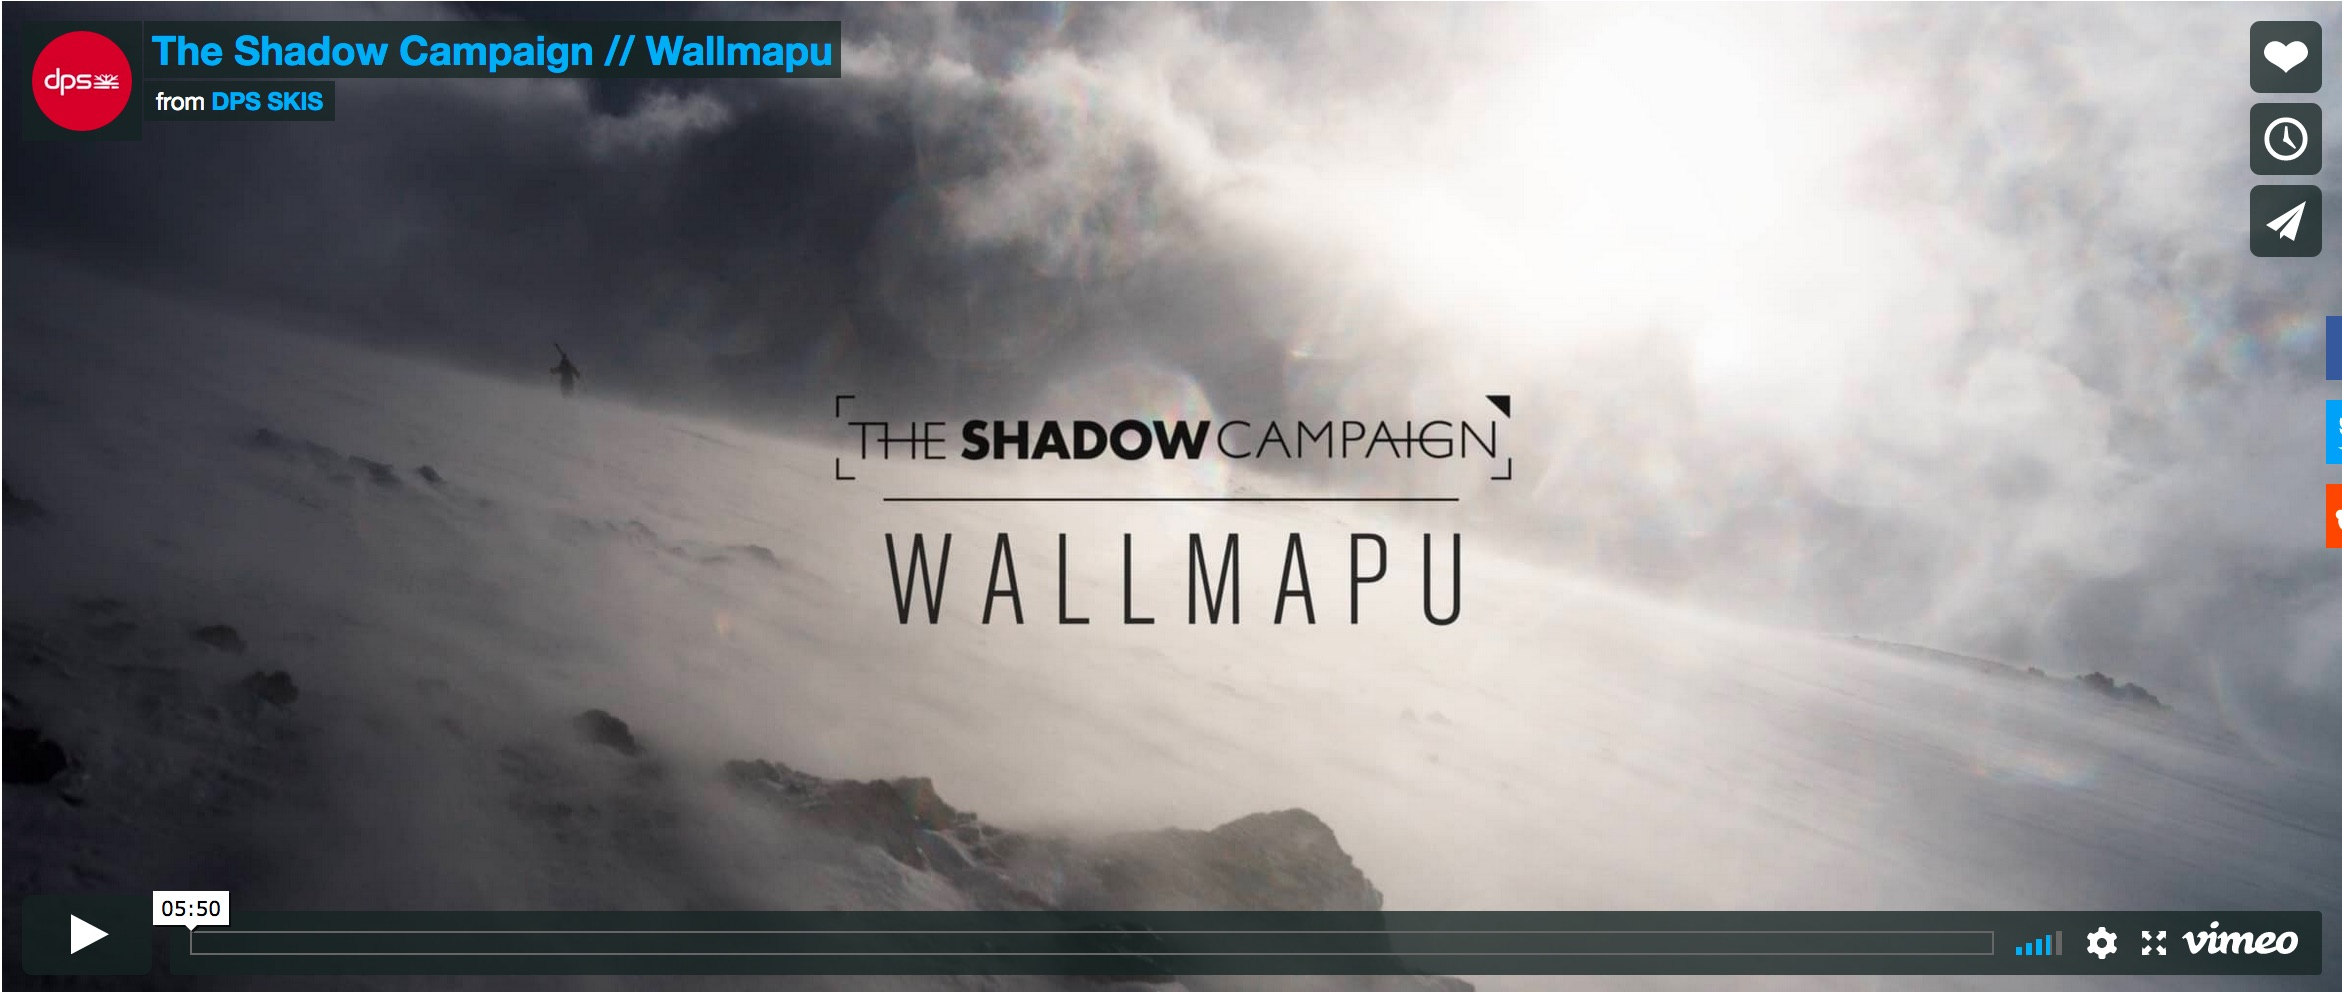 DPS Cinematic's The Shadow Campaign: Wallmapu